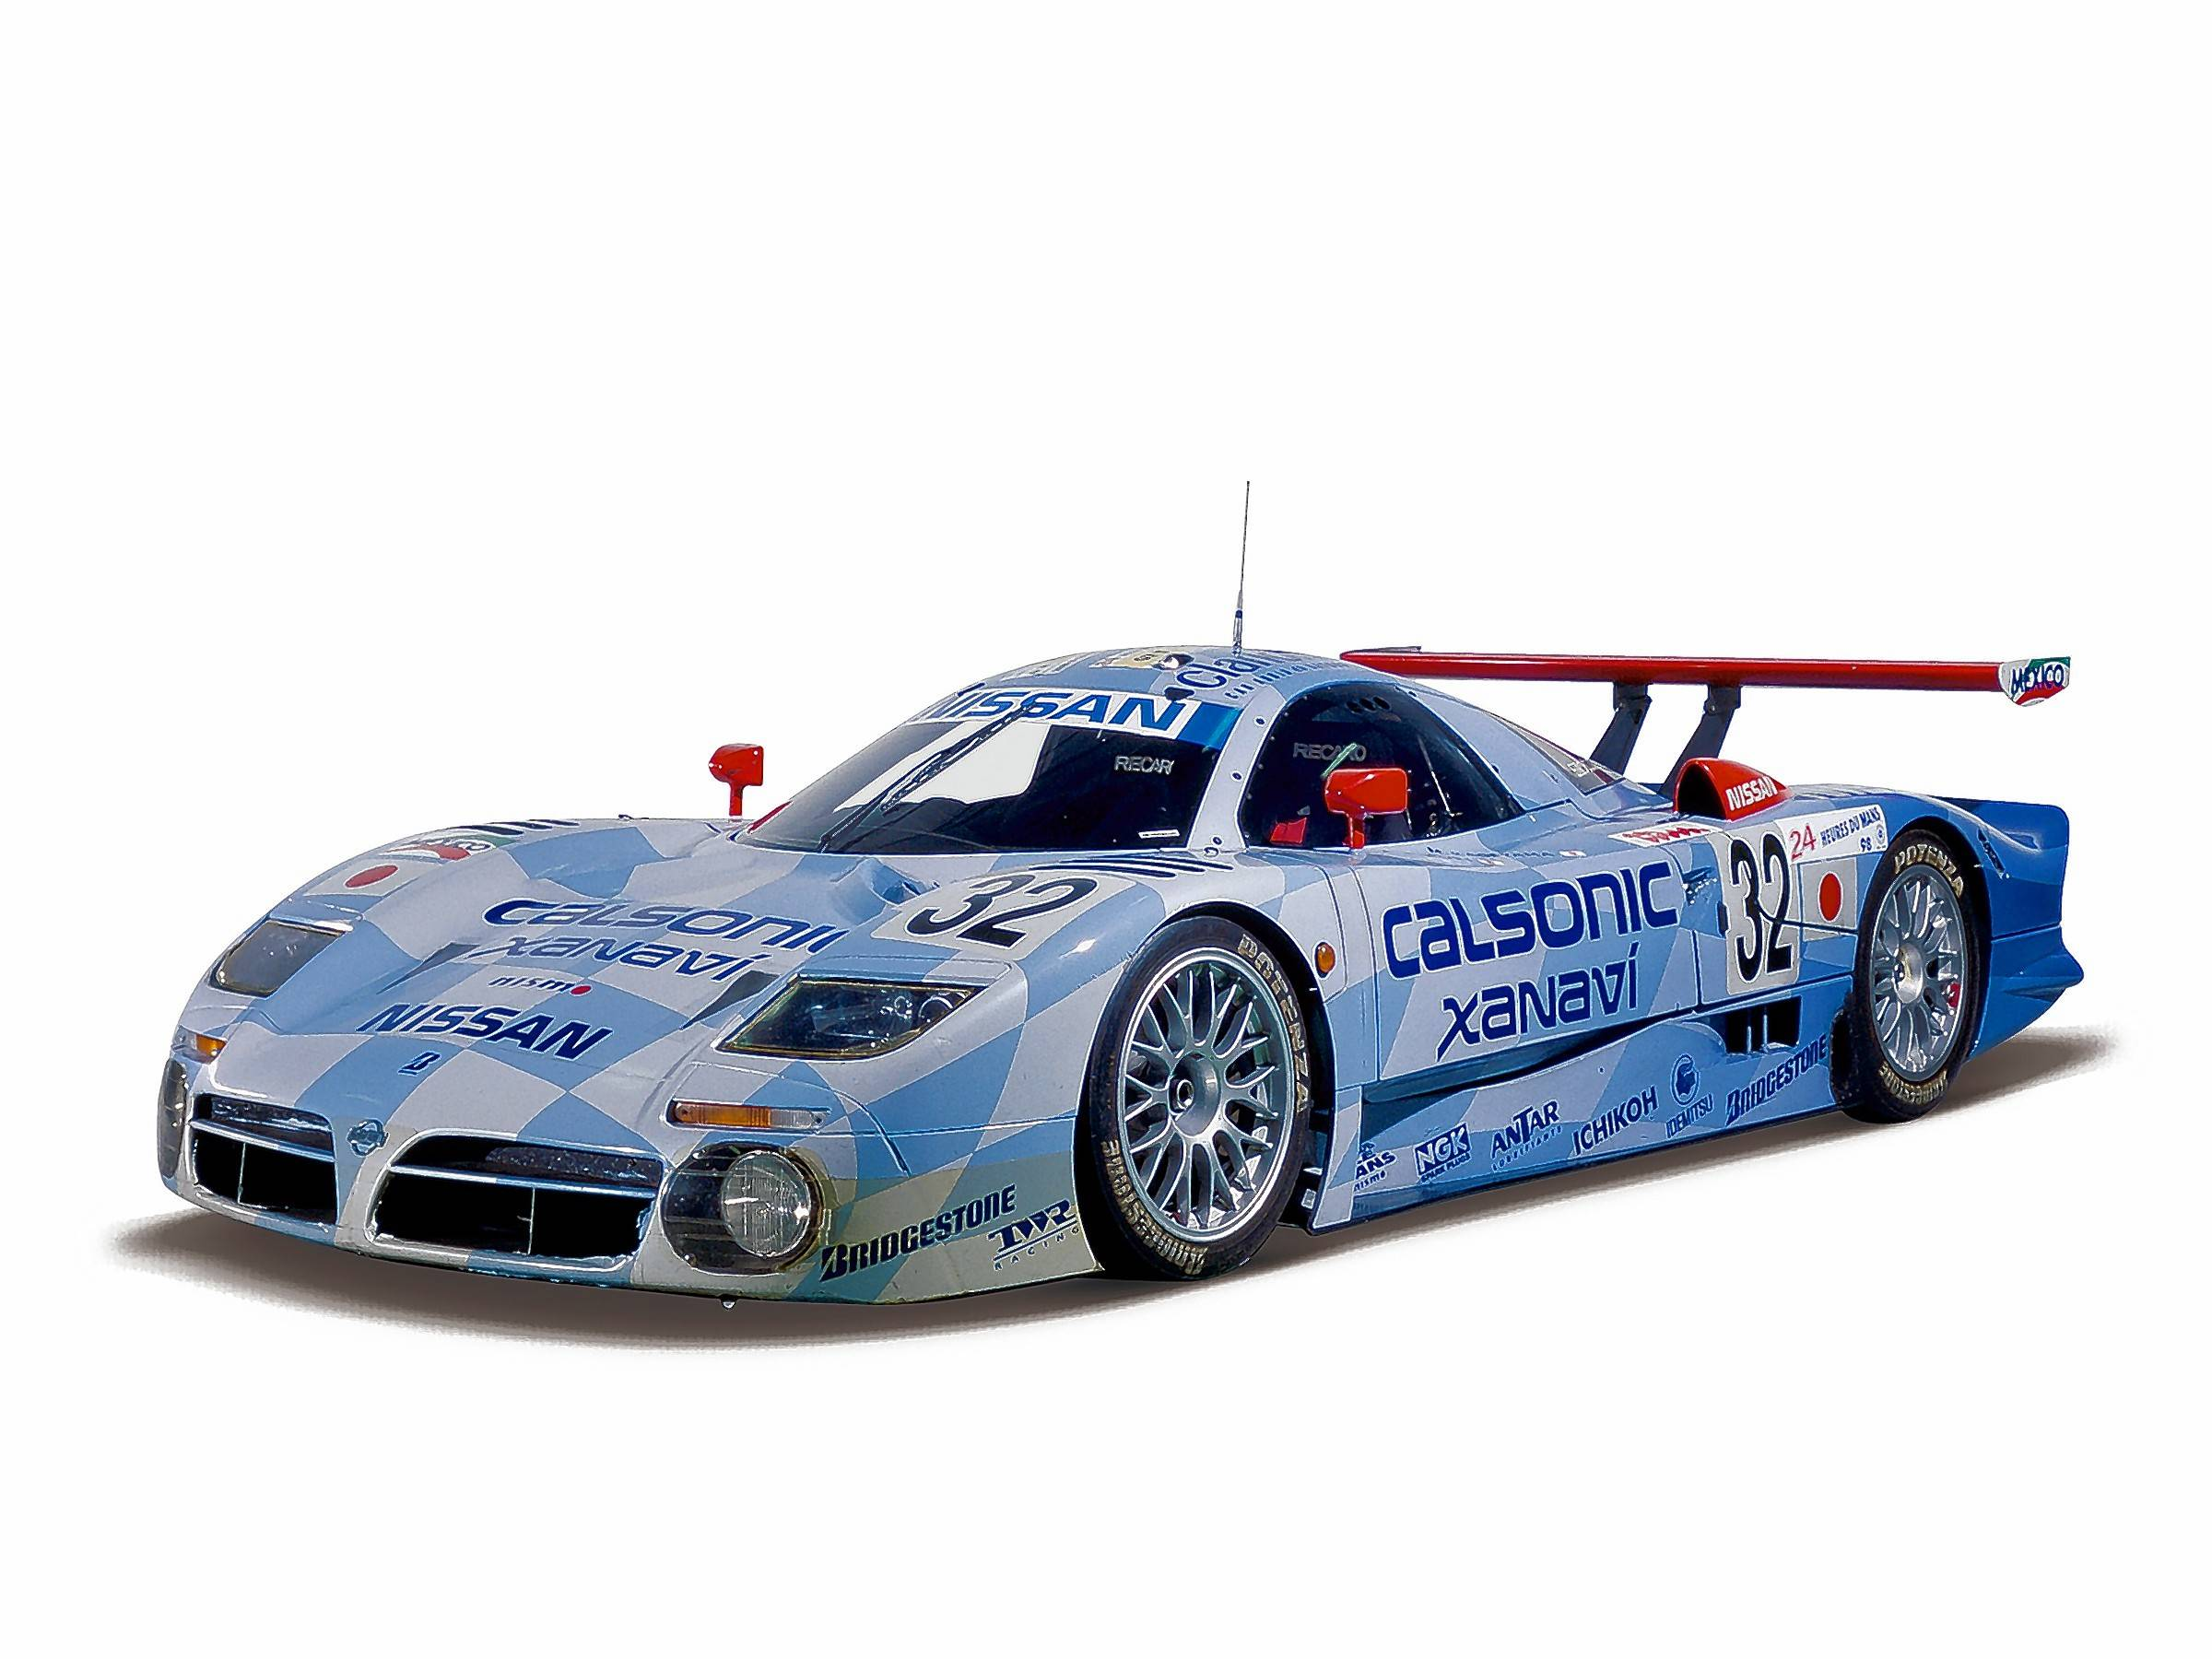 No. 9. Nissan R390 GT1, third place for Nissan at the 24 Hours of Le Mans in 1998.